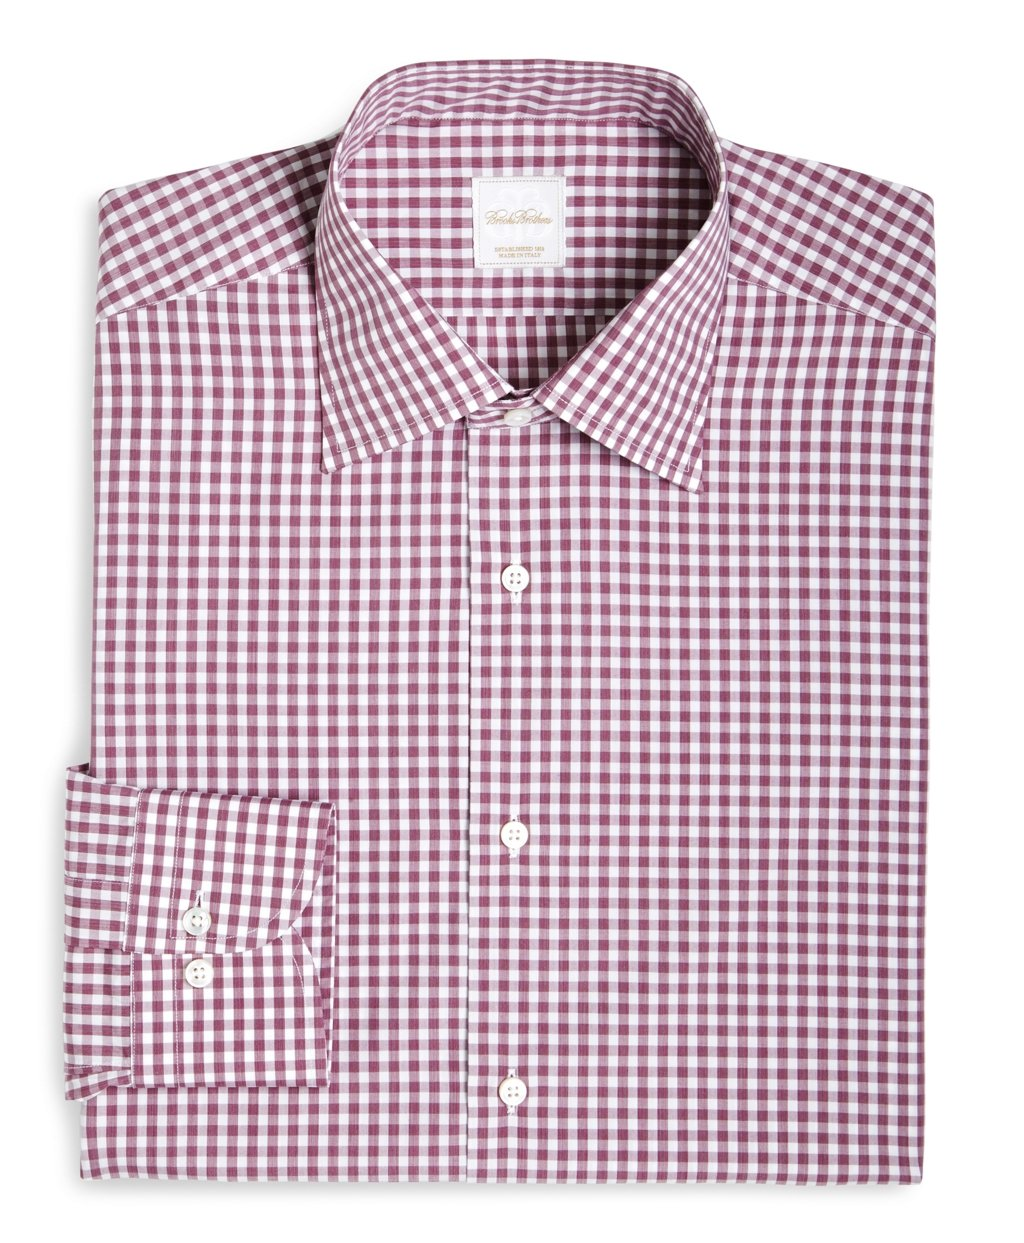 Lyst brooks brothers gingham woven dress shirt in pink for Men s red gingham dress shirt